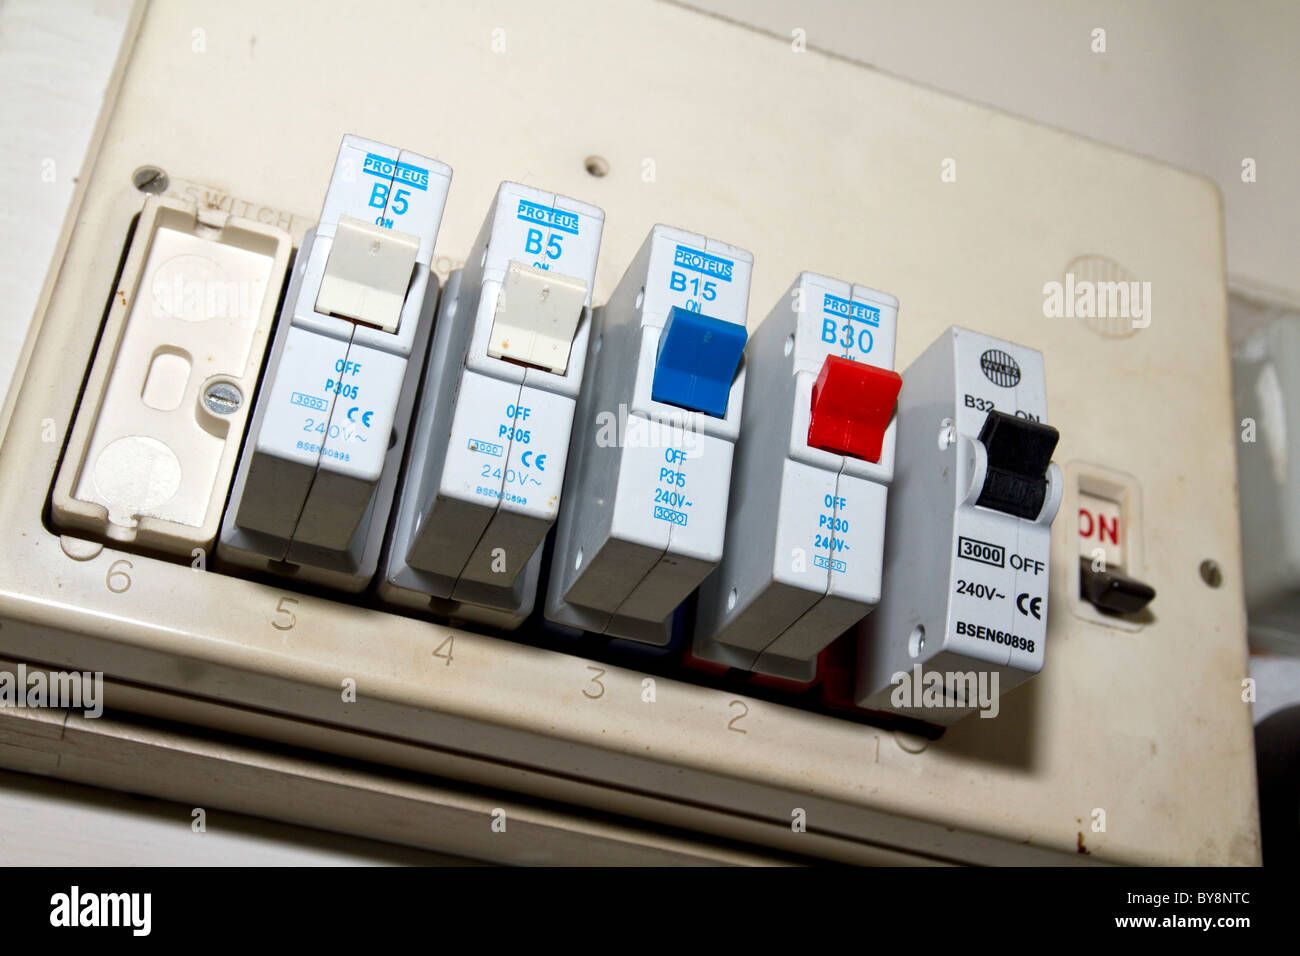 uk old electric fuse box in a london house stock photo. Black Bedroom Furniture Sets. Home Design Ideas